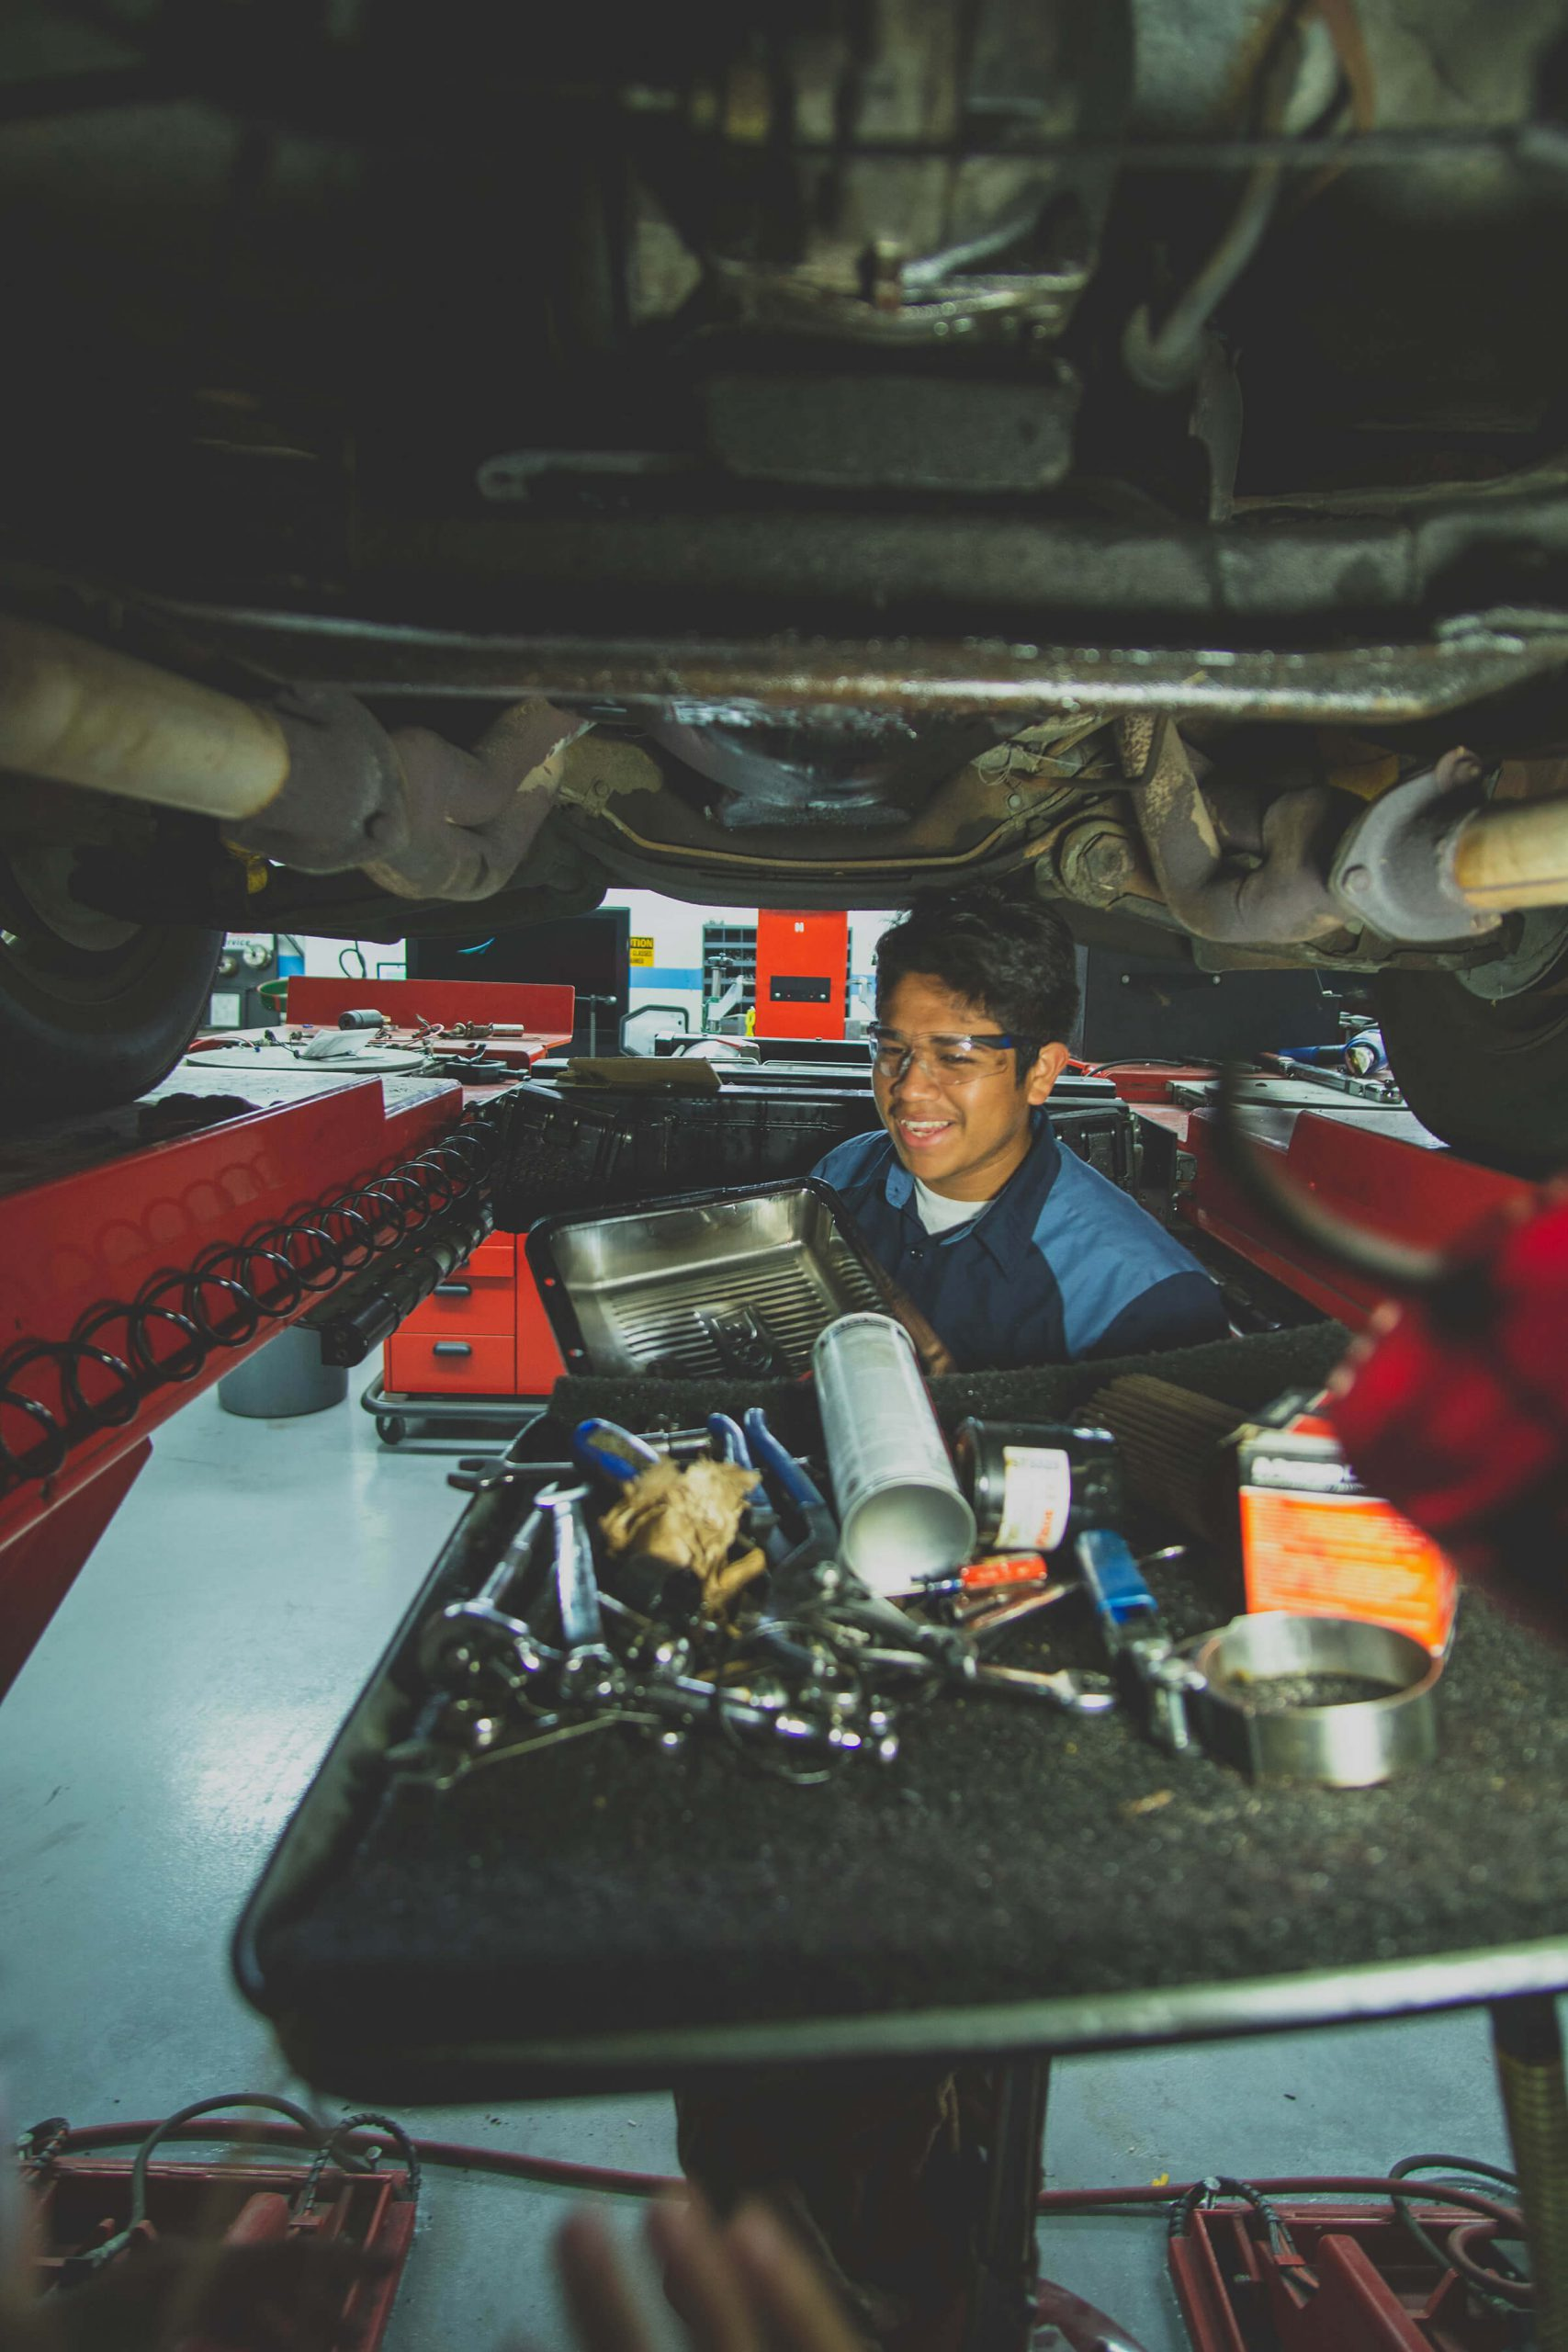 Under a raised automotive vehicle, a young mechanic student changes the oil.